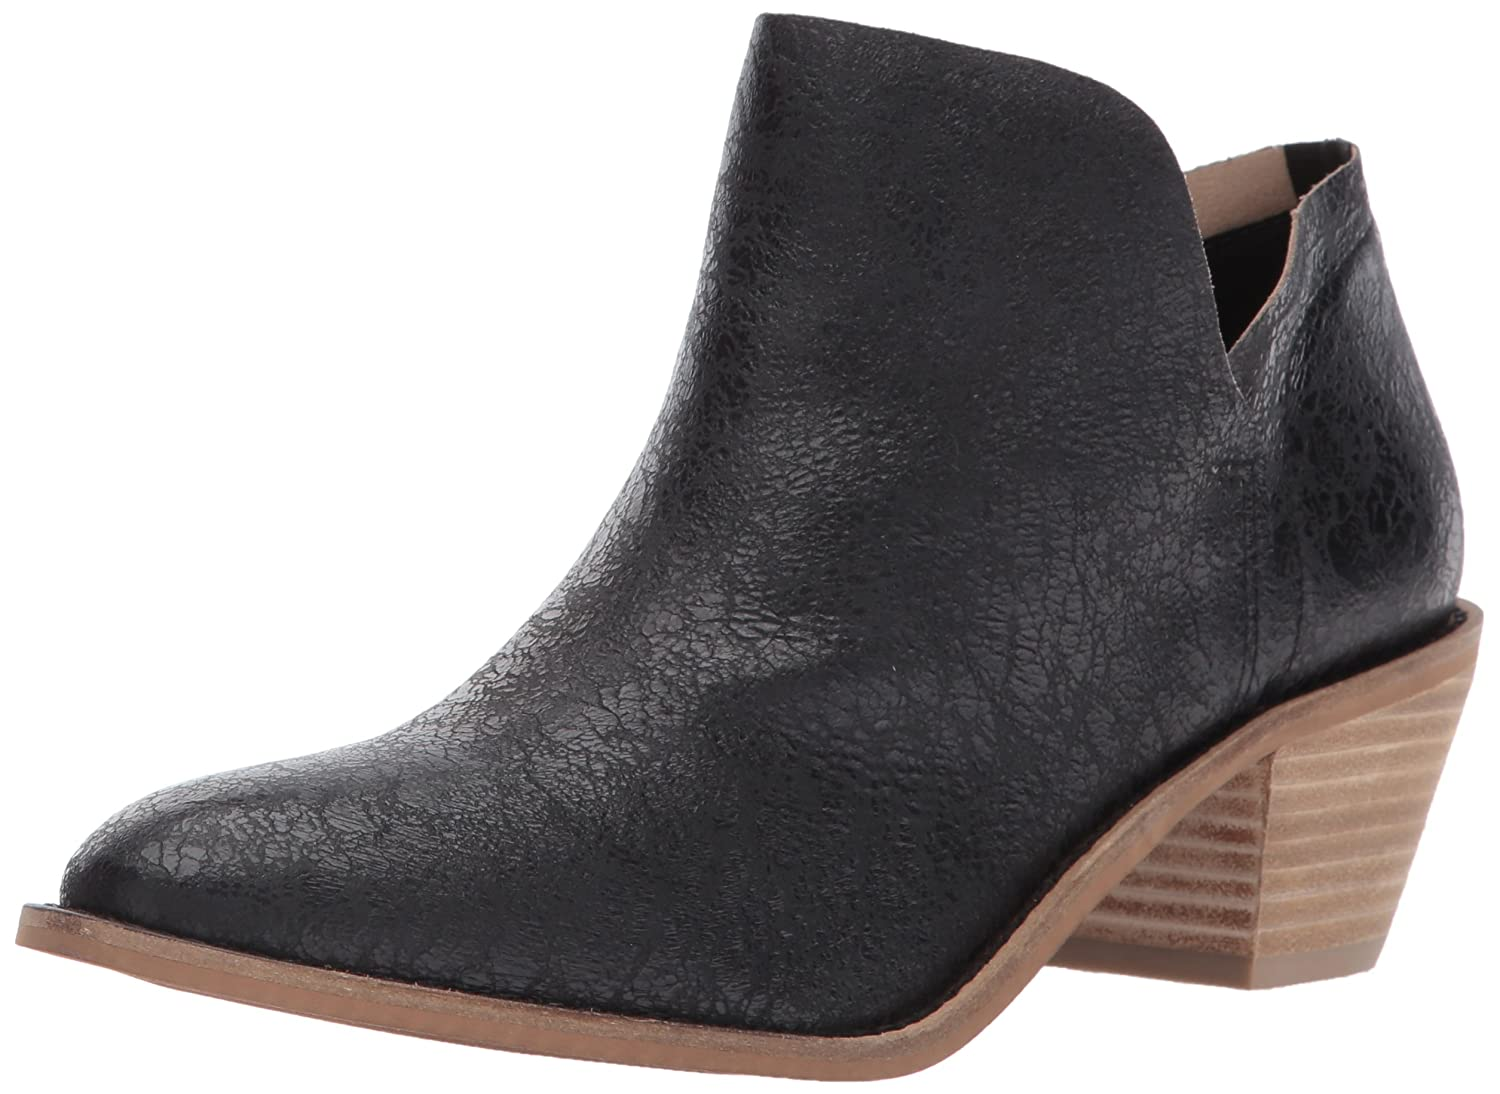 Kelsi Dagger Brooklyn Women's Kenmare Ankle Boot B01MS85QUA 5.5 B(M) US|Black Crackle Leather